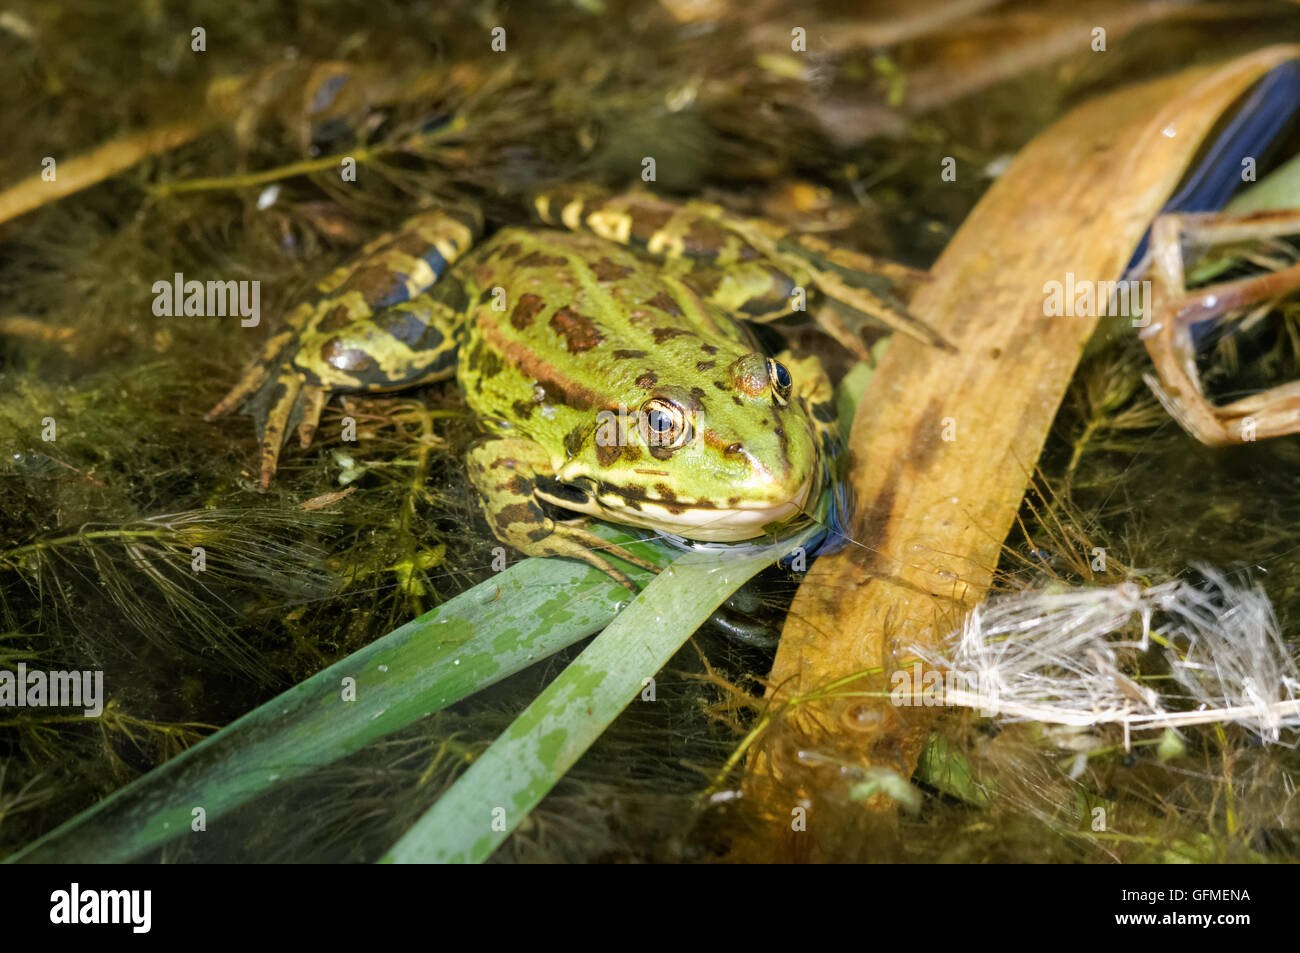 The pool frog (Pelophylax lessonae) at Rainham Marshes Nature Reserve in London England United Kingdom UK - Stock Image